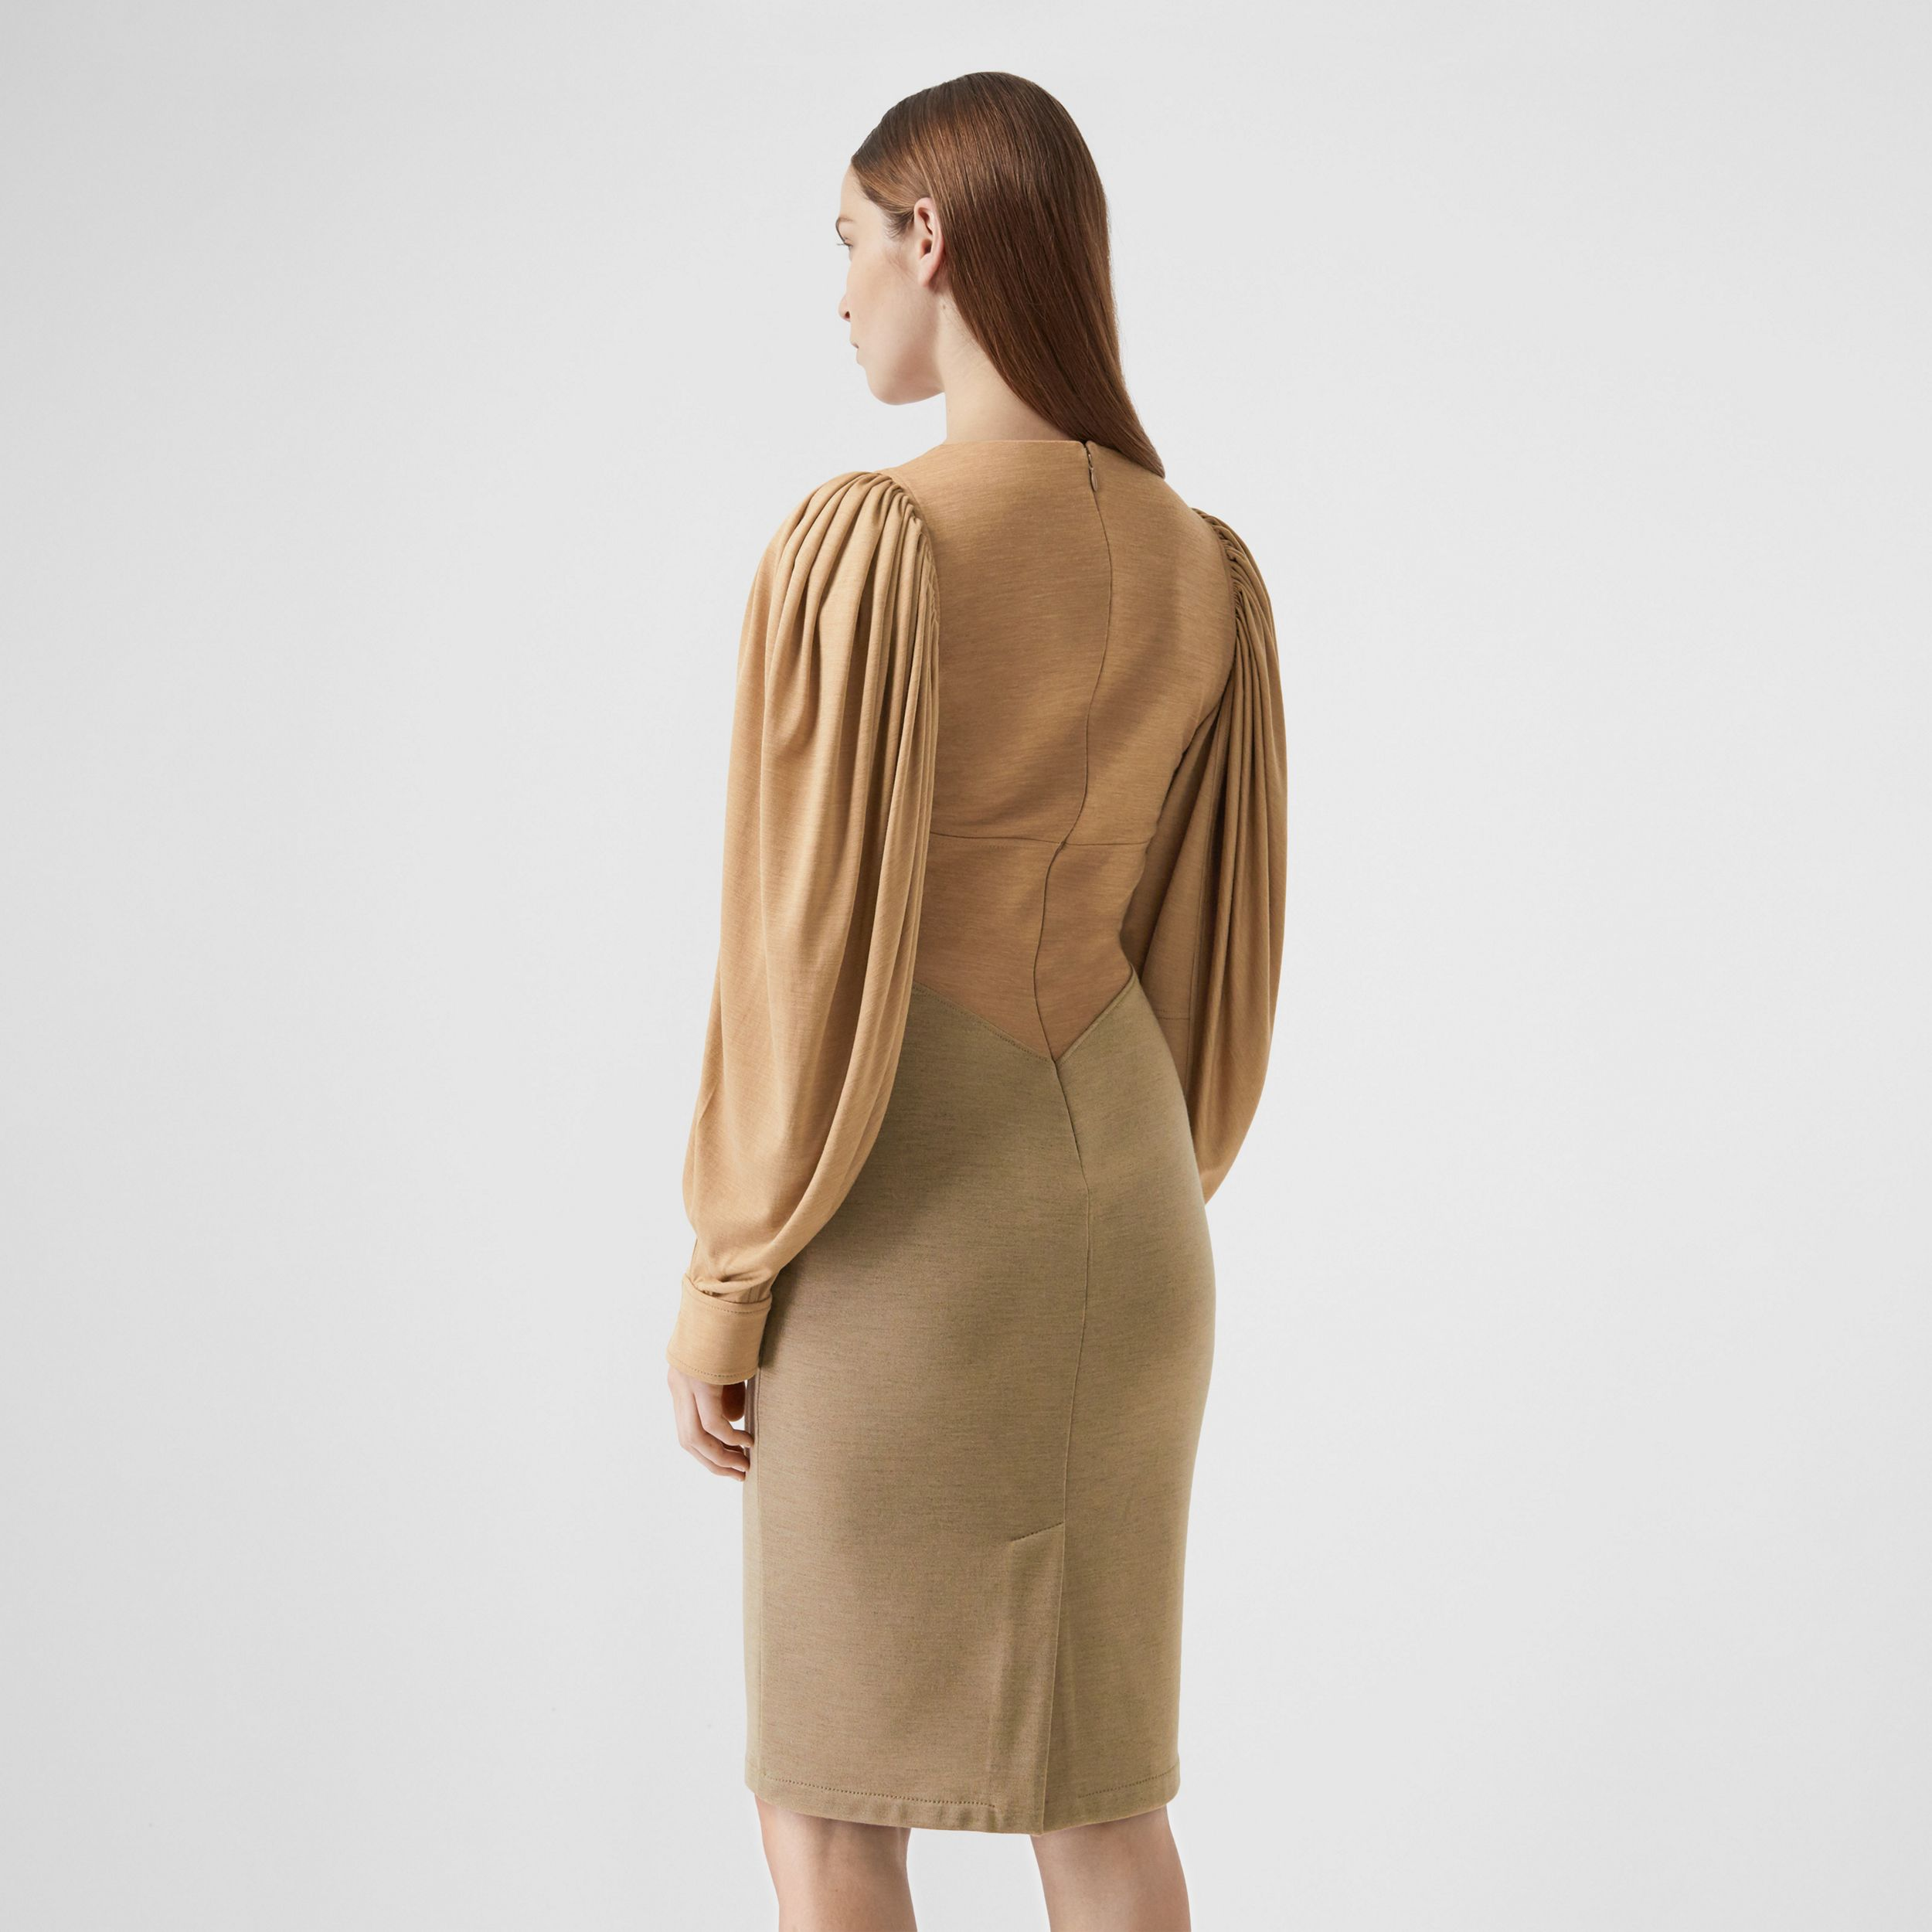 Panelled Wool Silk Jersey Dress in Pecan Melange - Women | Burberry - 2